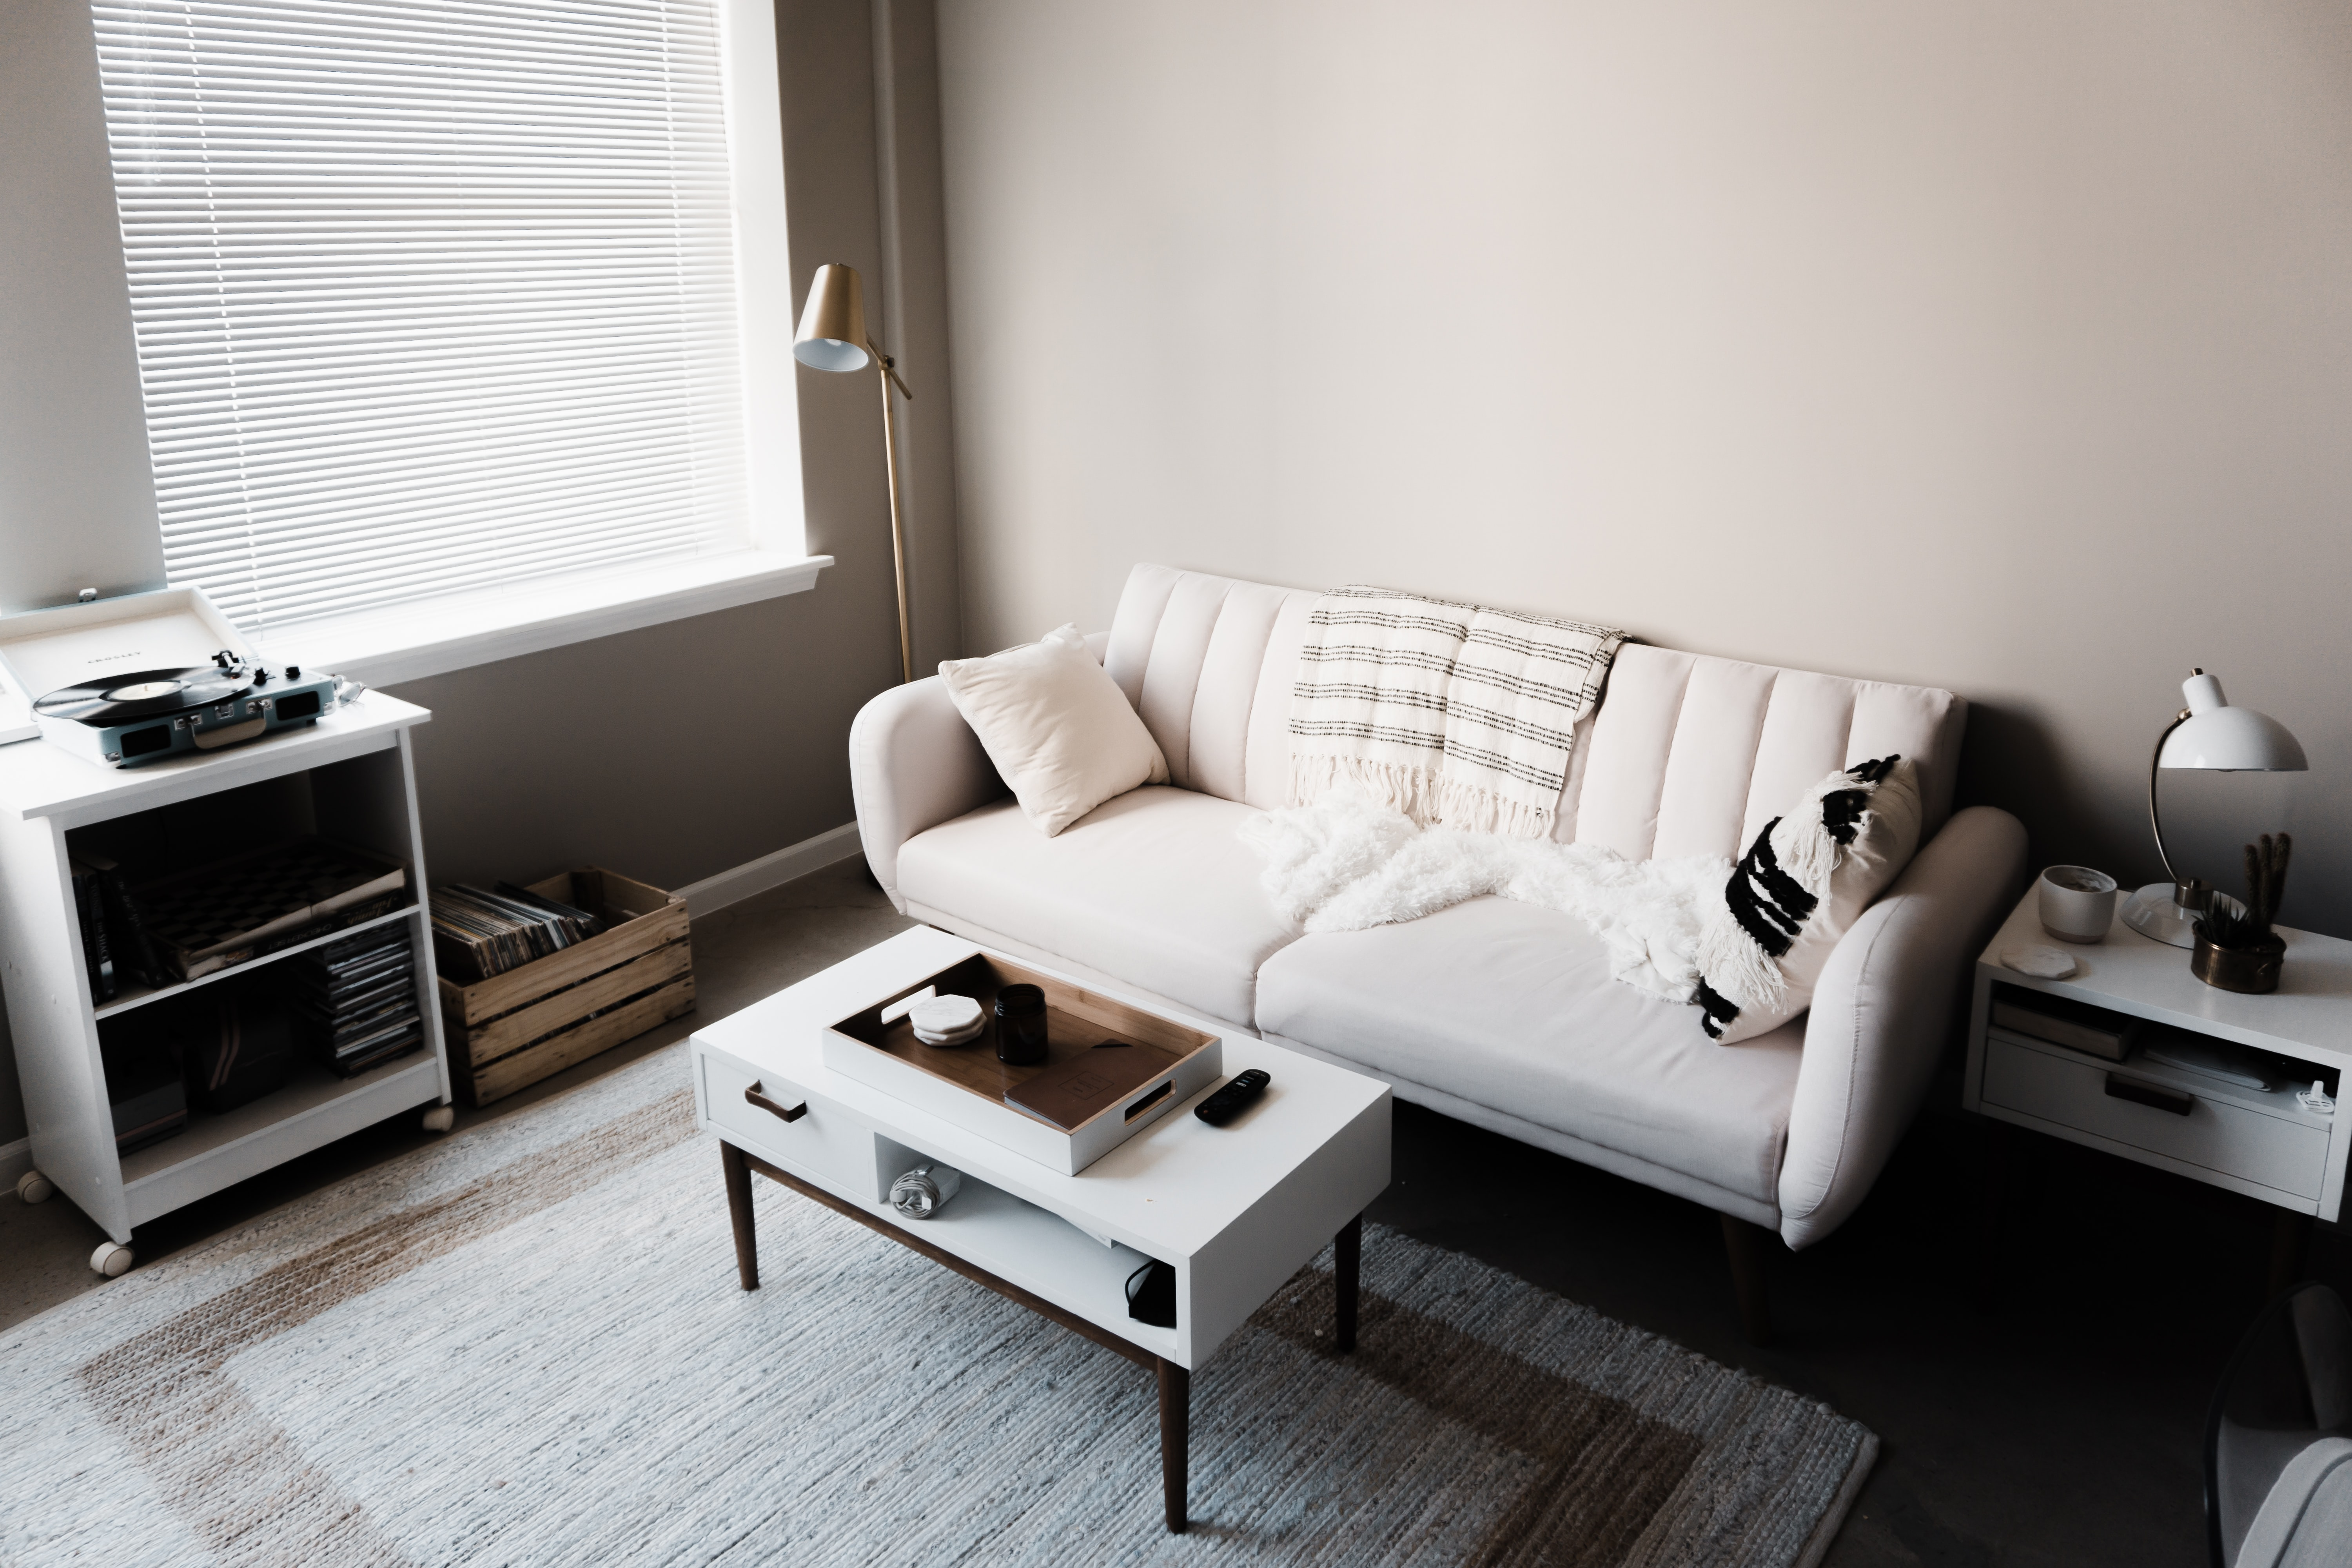 Weekly Maid Cleaning Services In Montreal